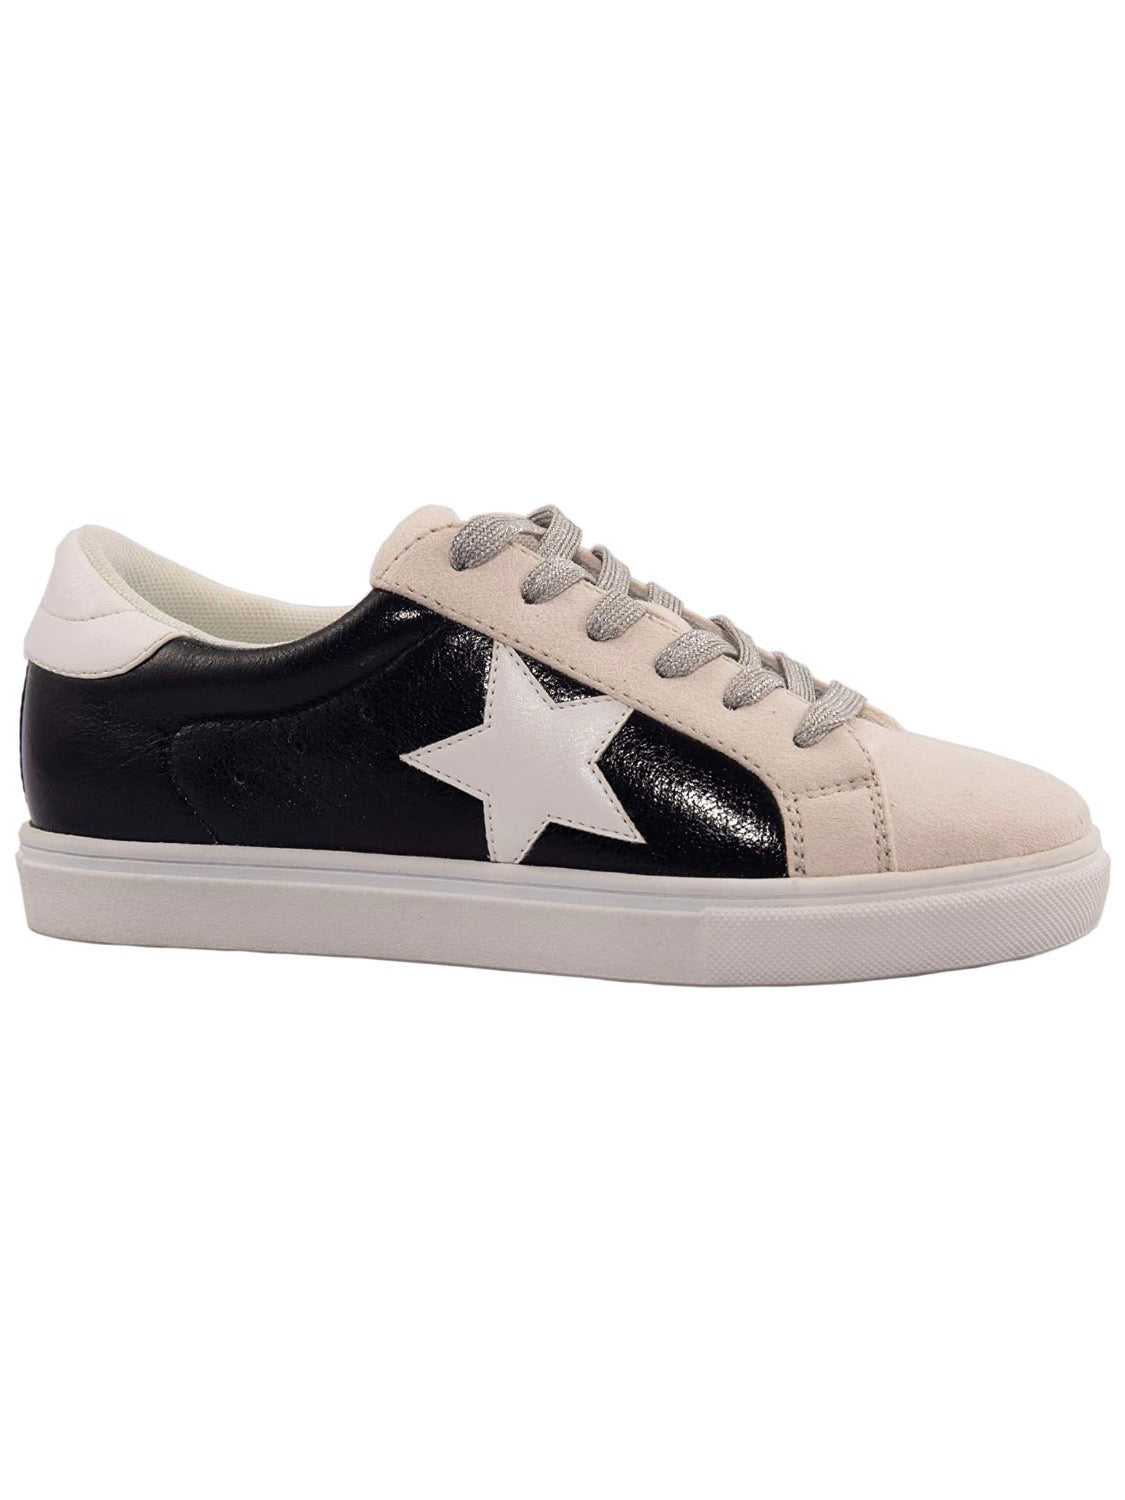 White Star Black Sneakers